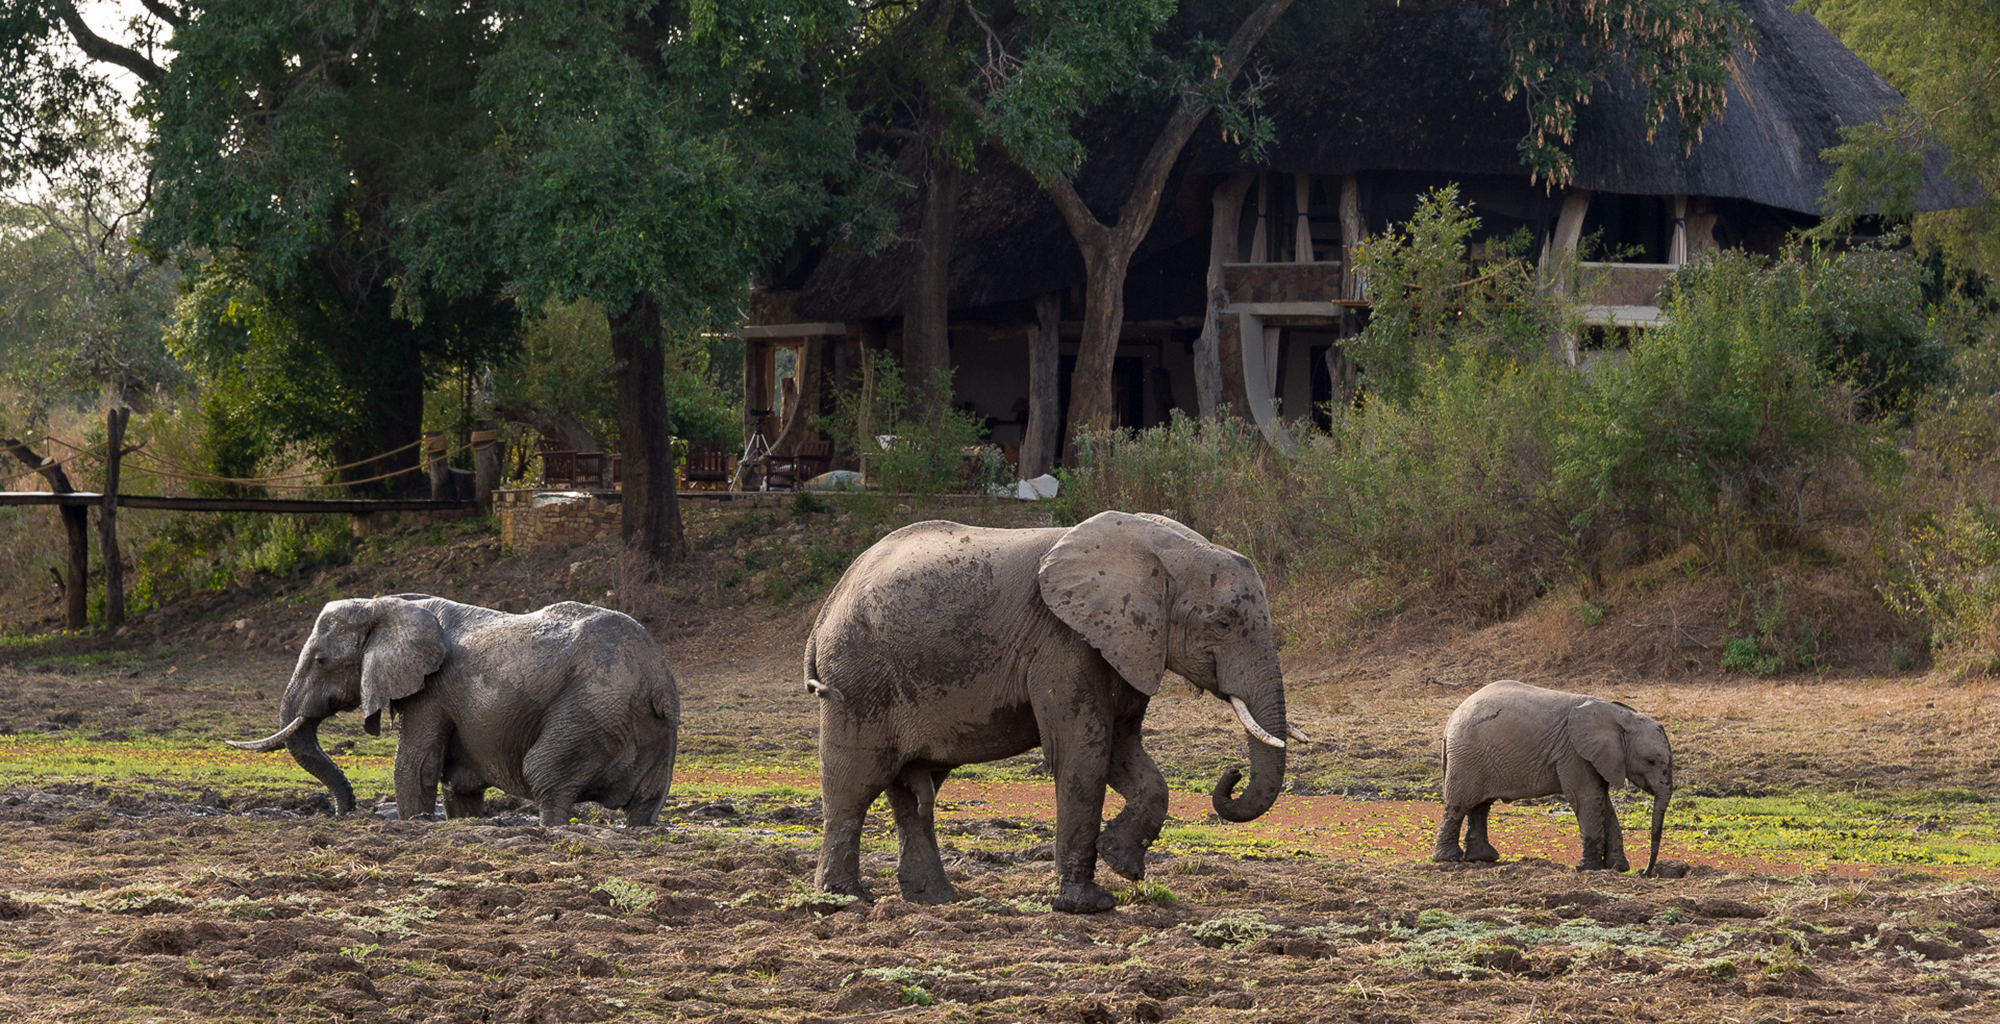 Zambia-Luangwa-Safari-House-Wildlife-Elephant